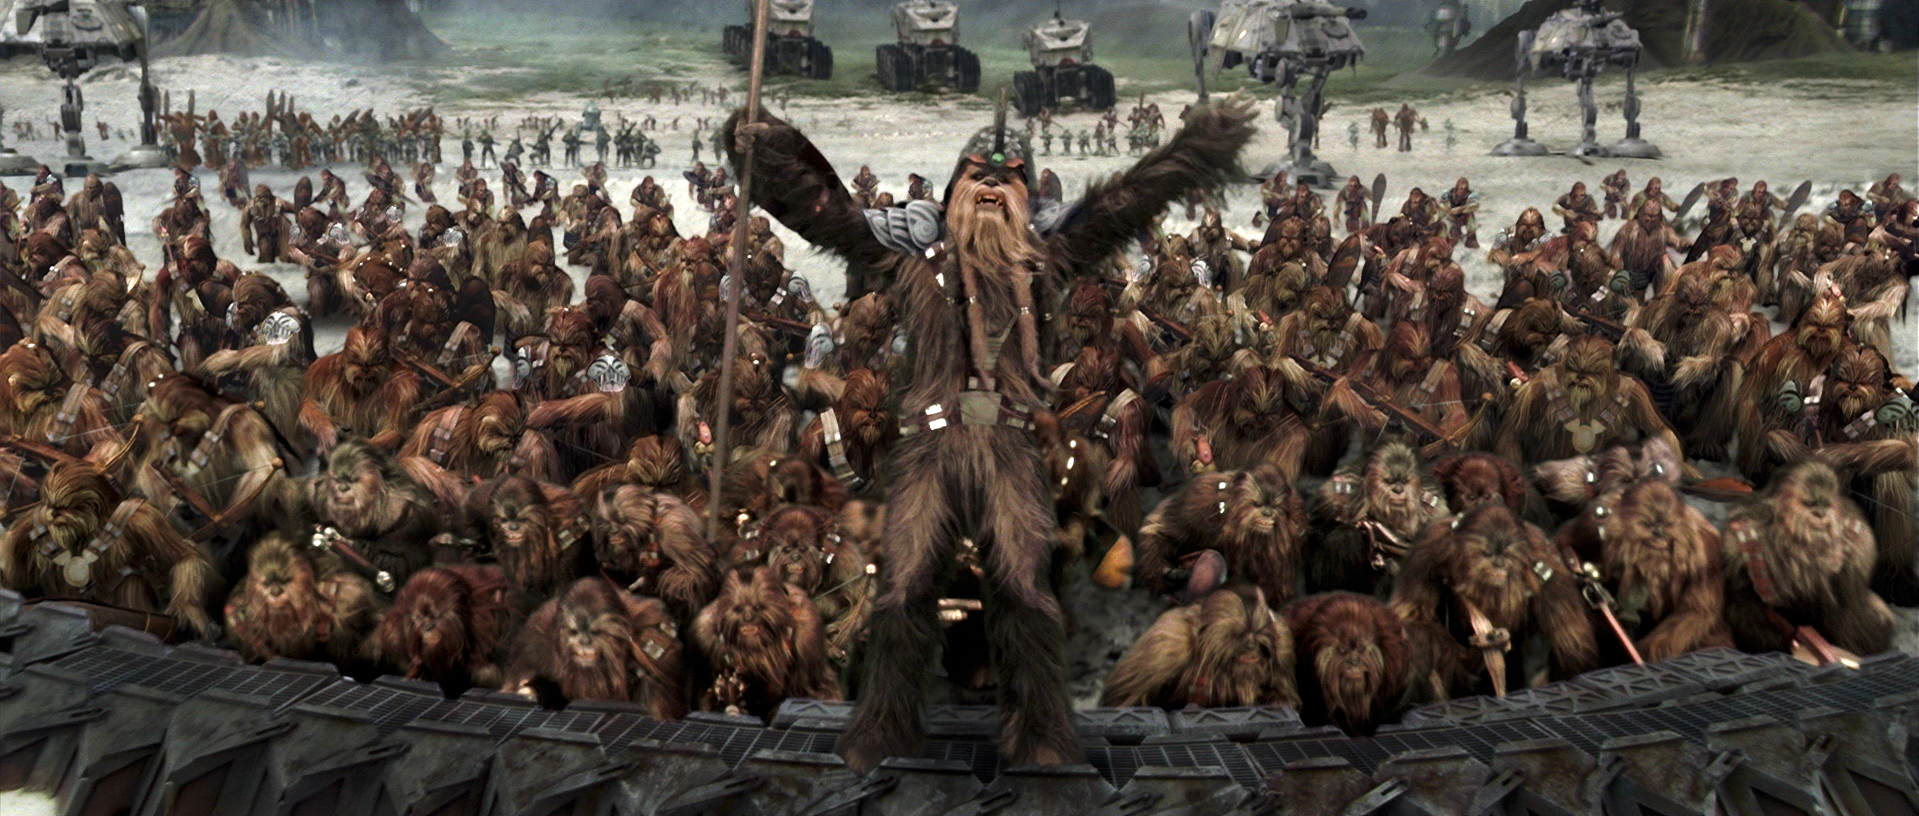 Image result for Wookie warrior Revenge of the Sith wookie battle